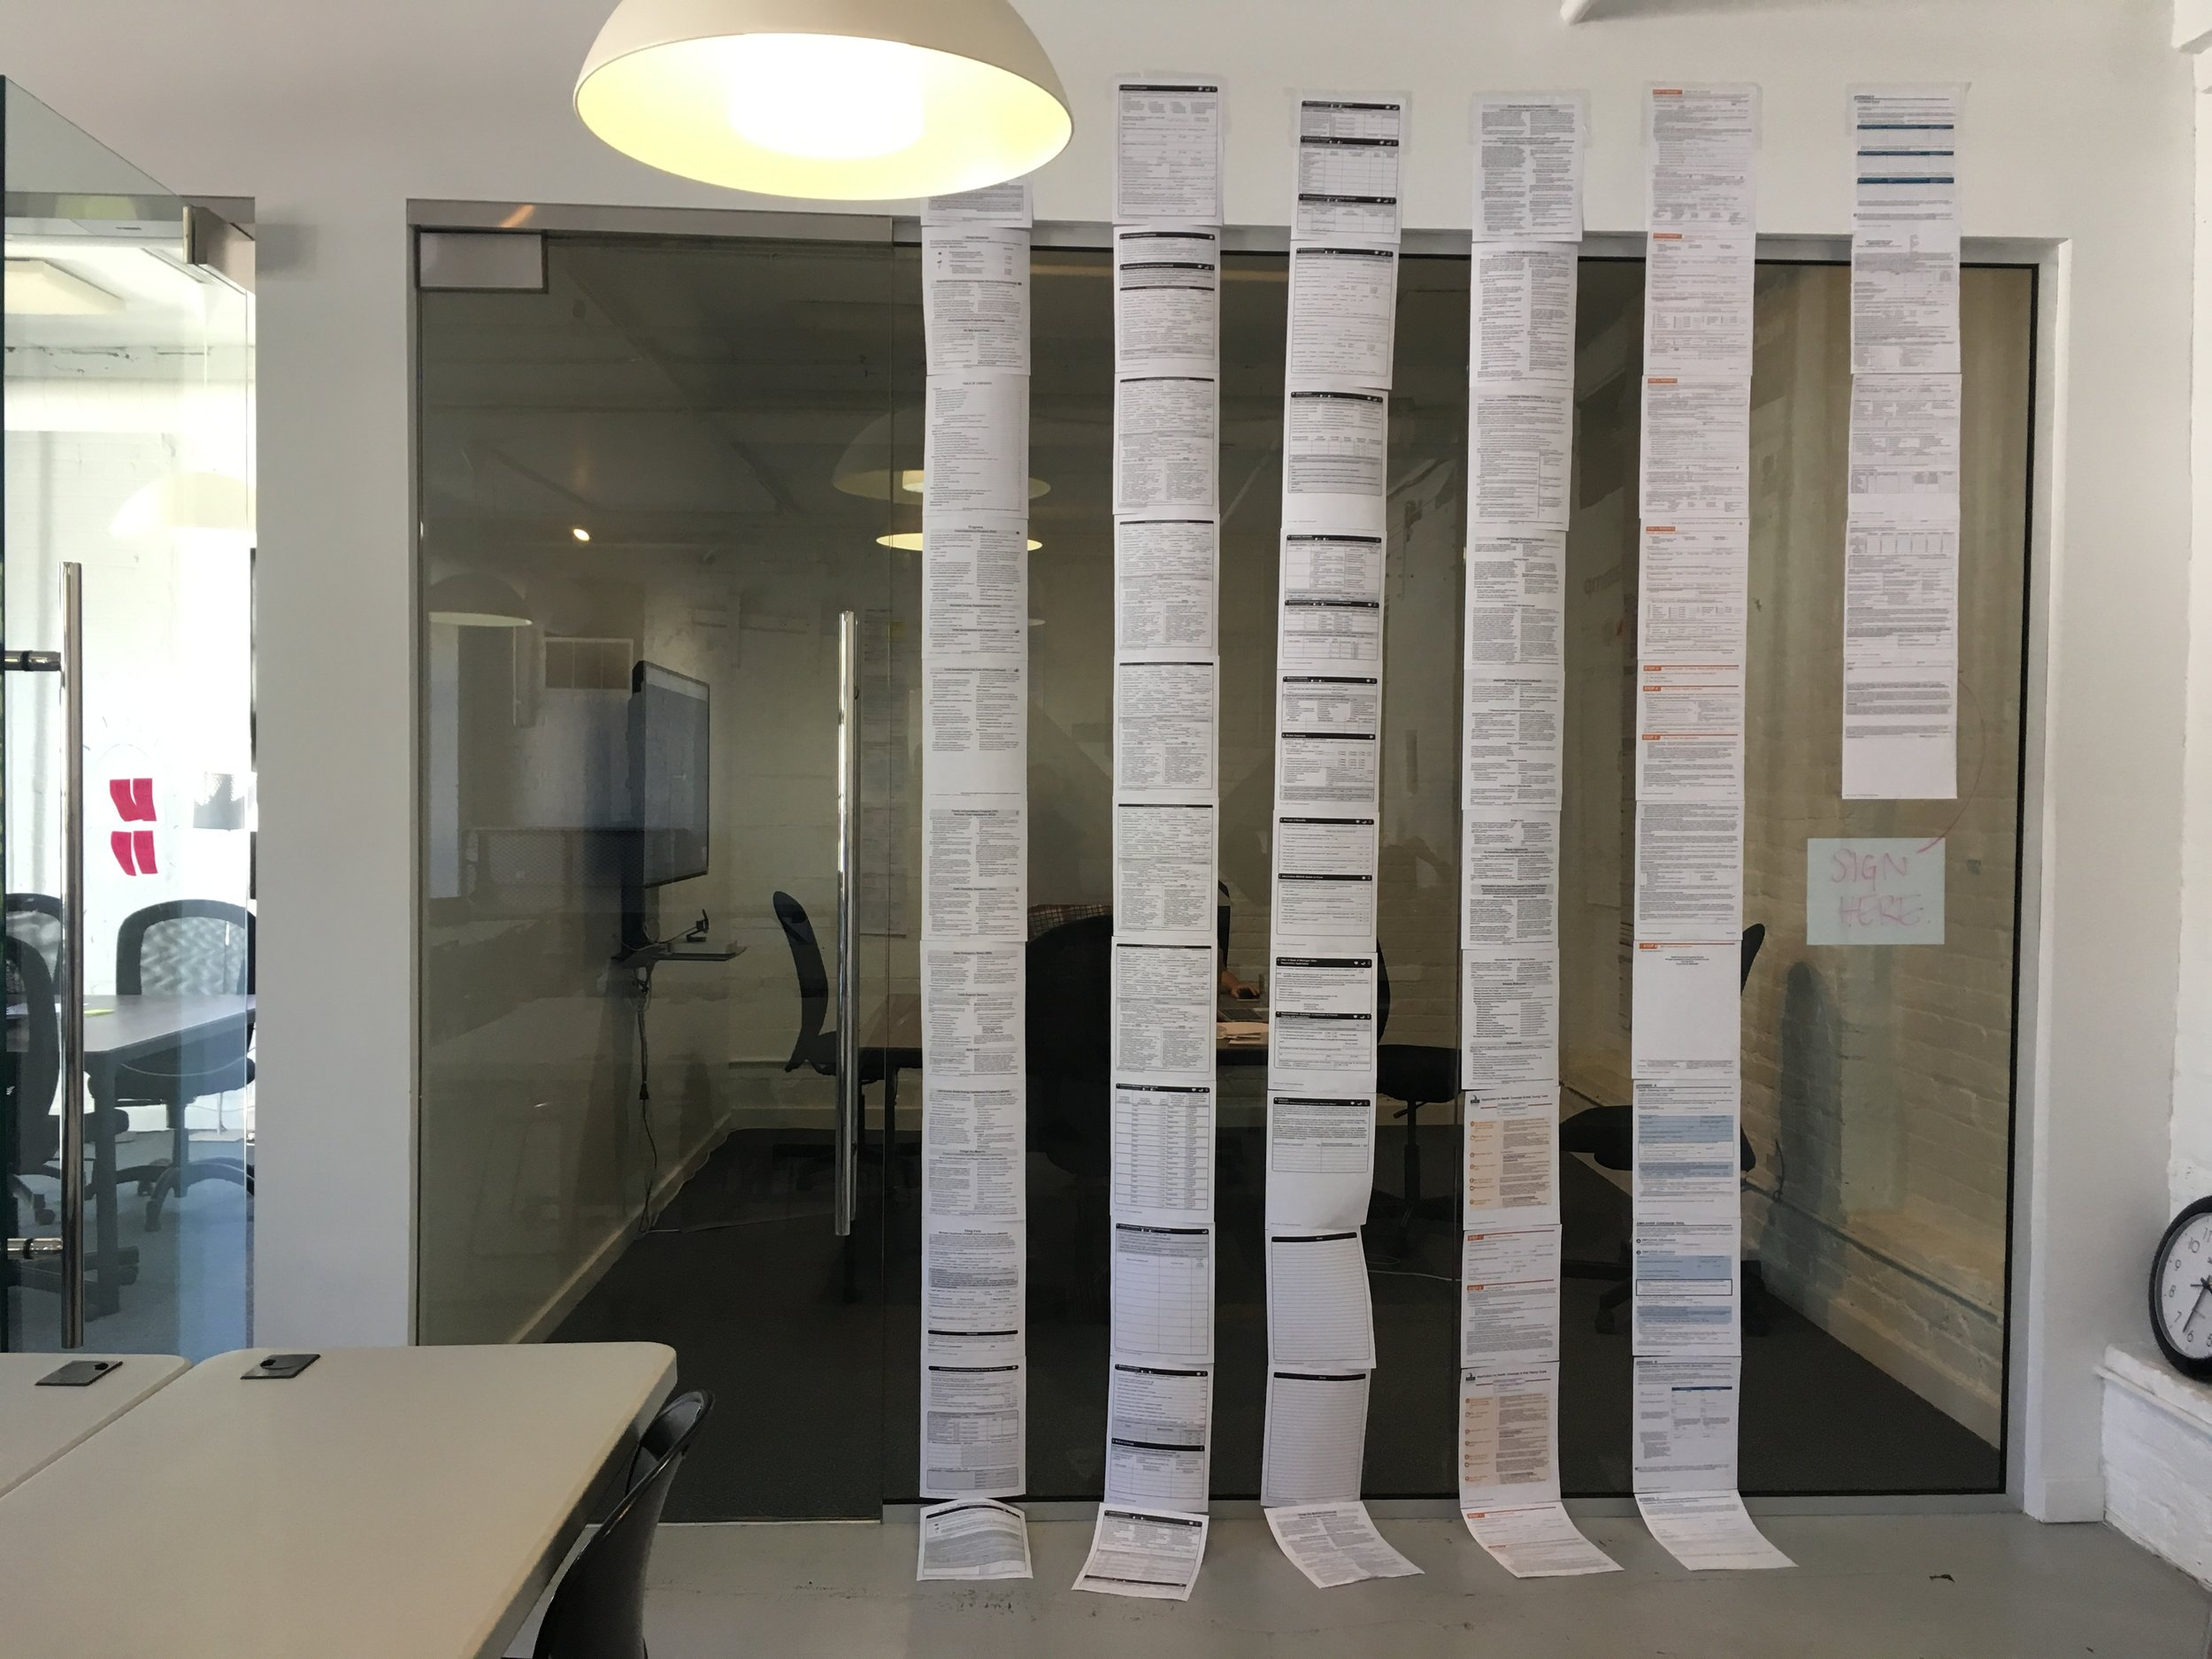 Setting up our war room. We wanted to remember the weight of the original application, so we printed it out and taped it together.